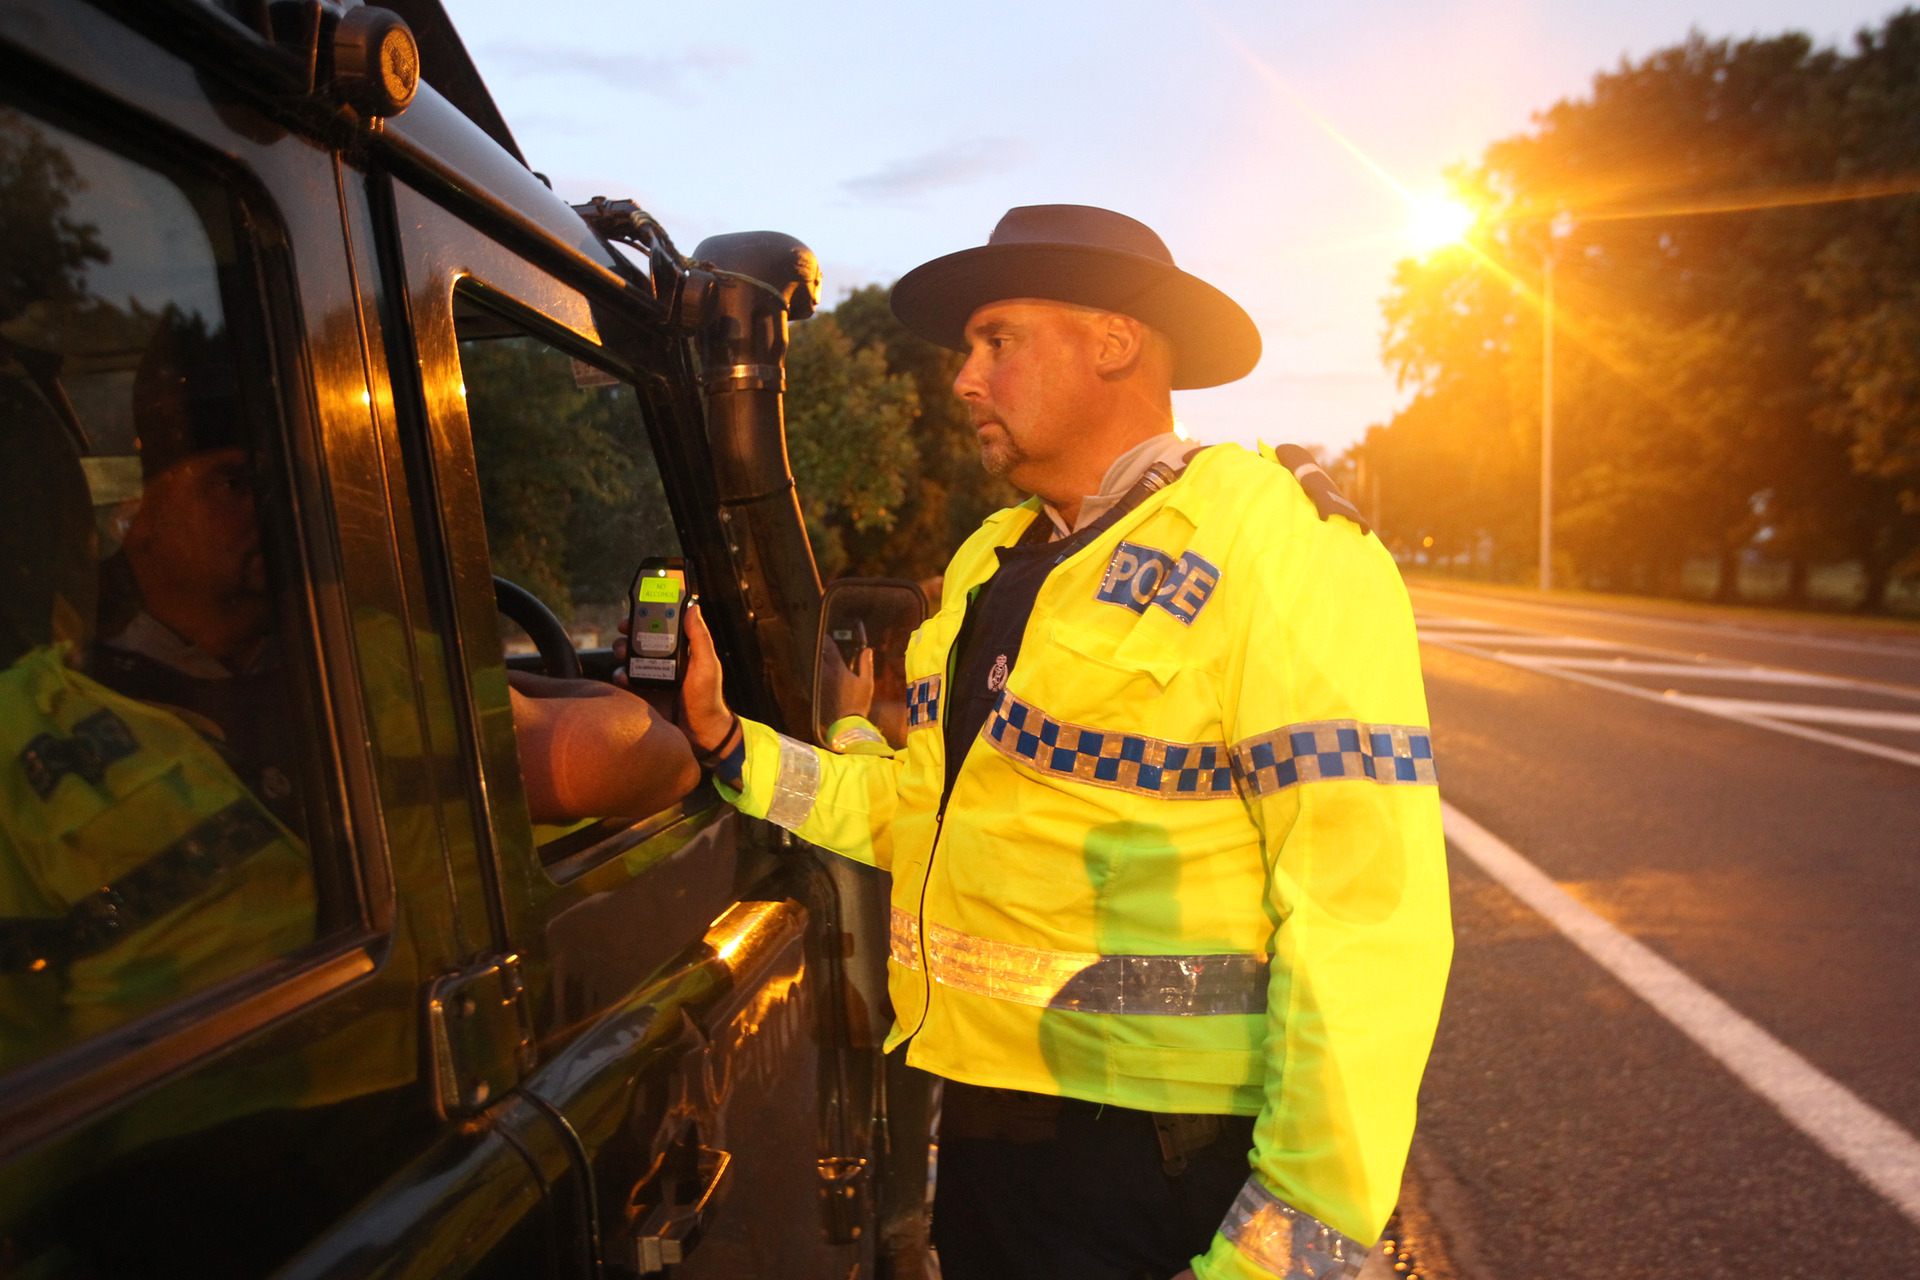 Drink driver's stunning response to police question